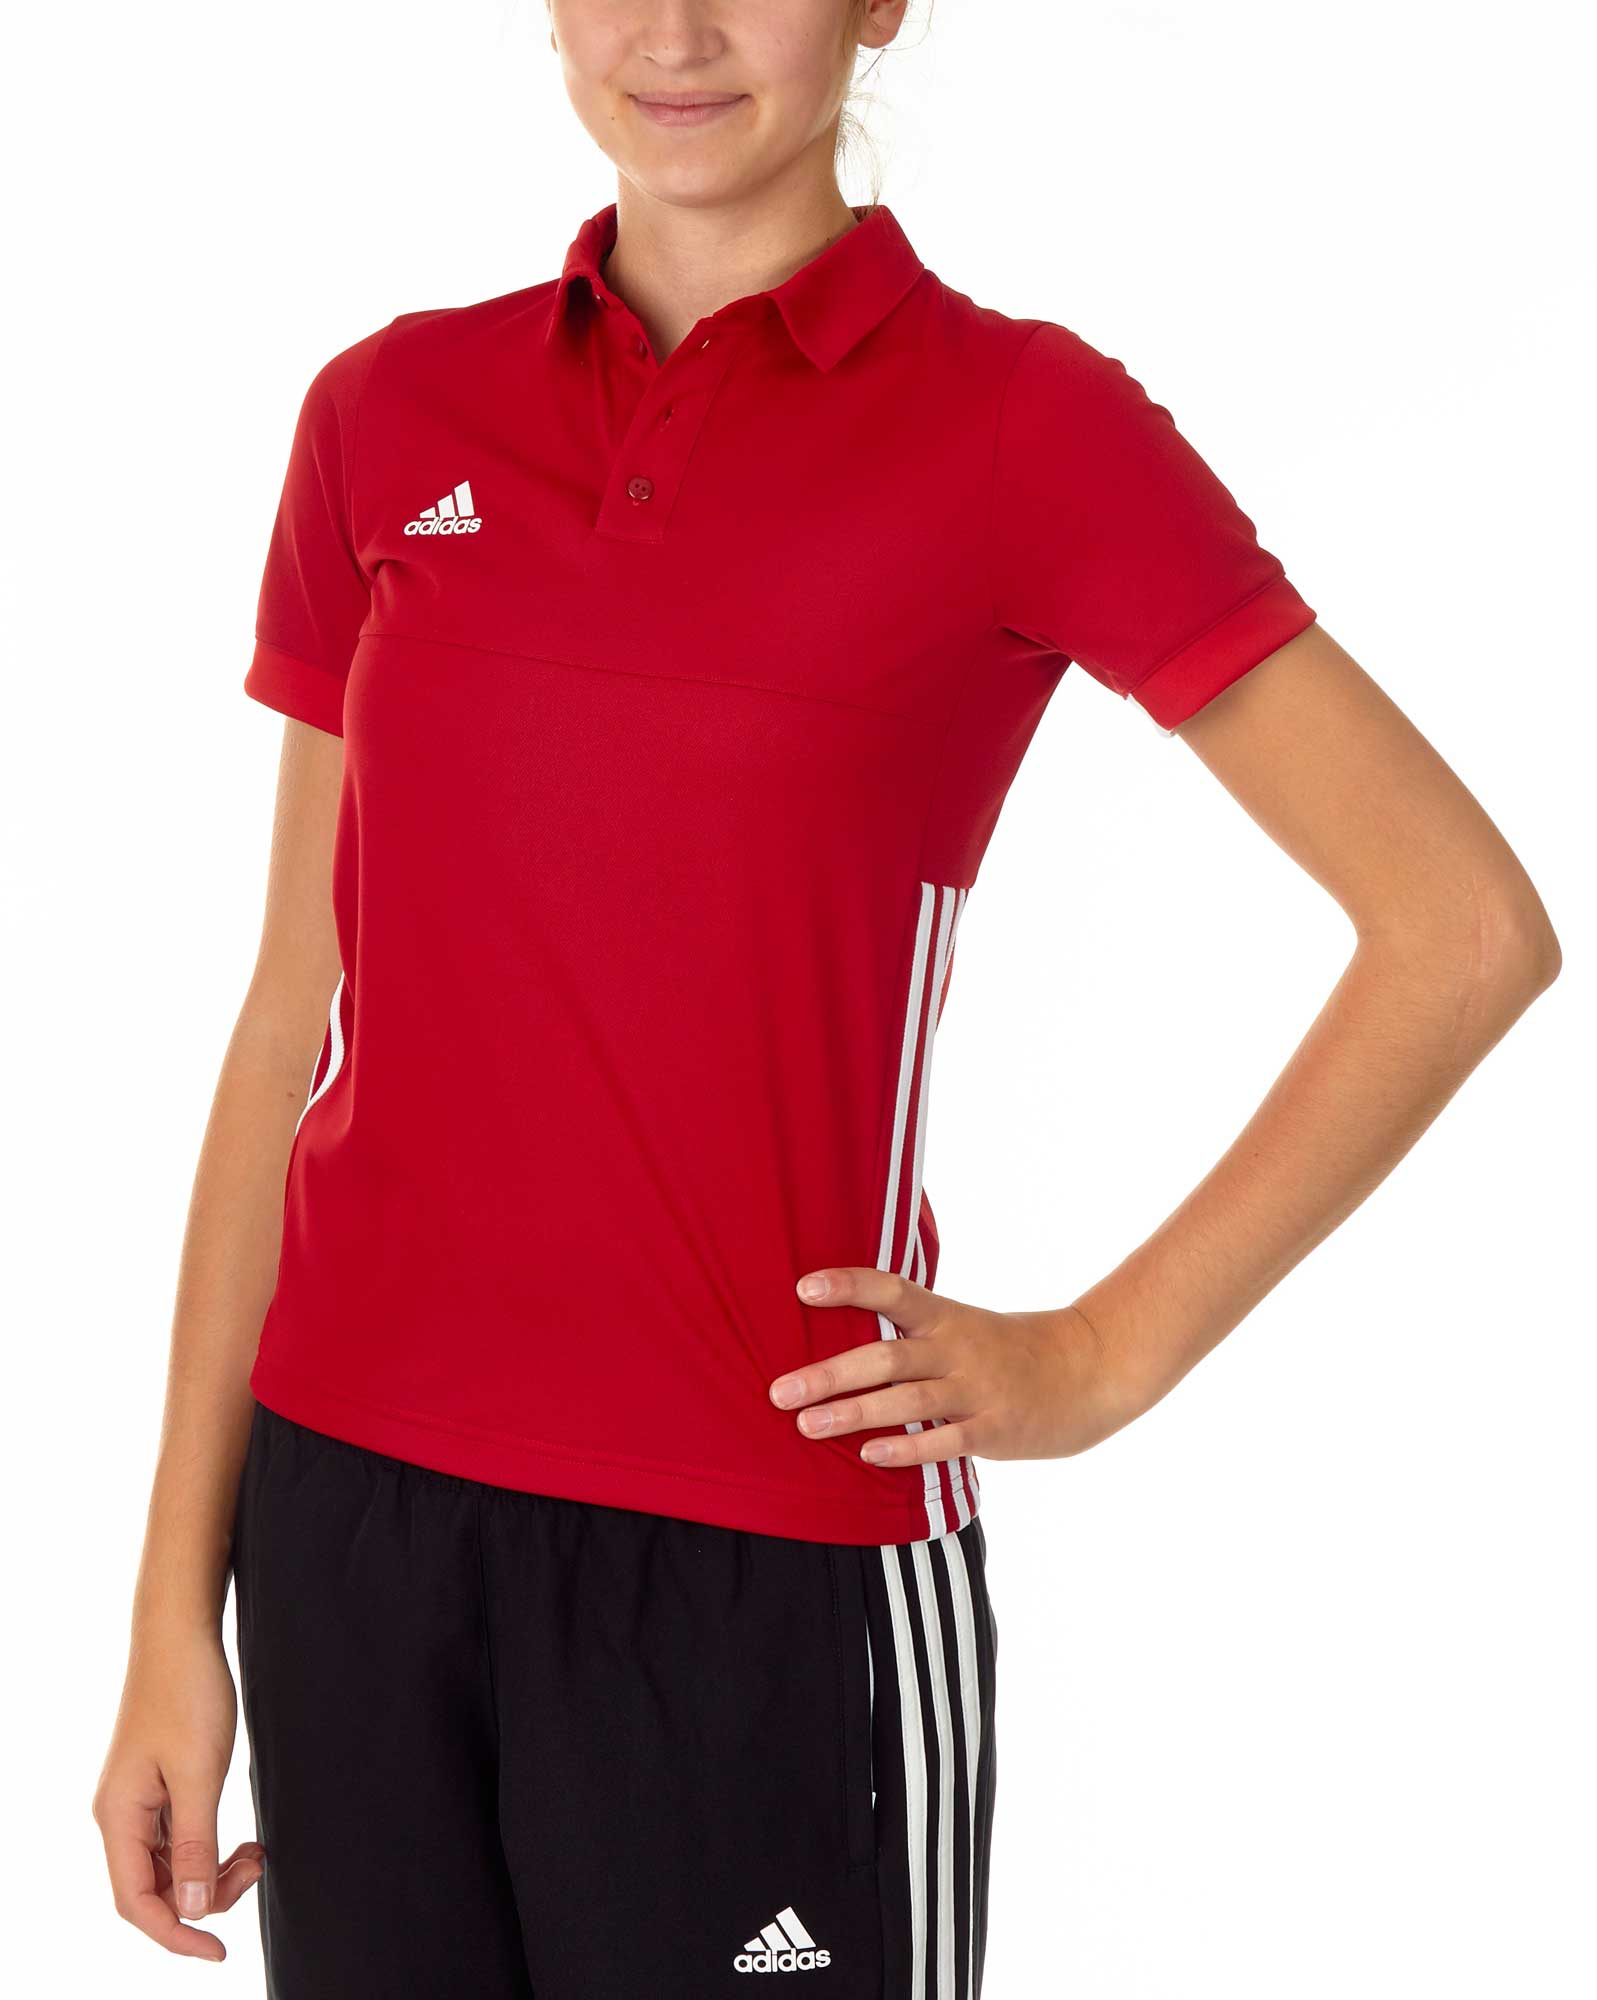 adidas polo shirt damen